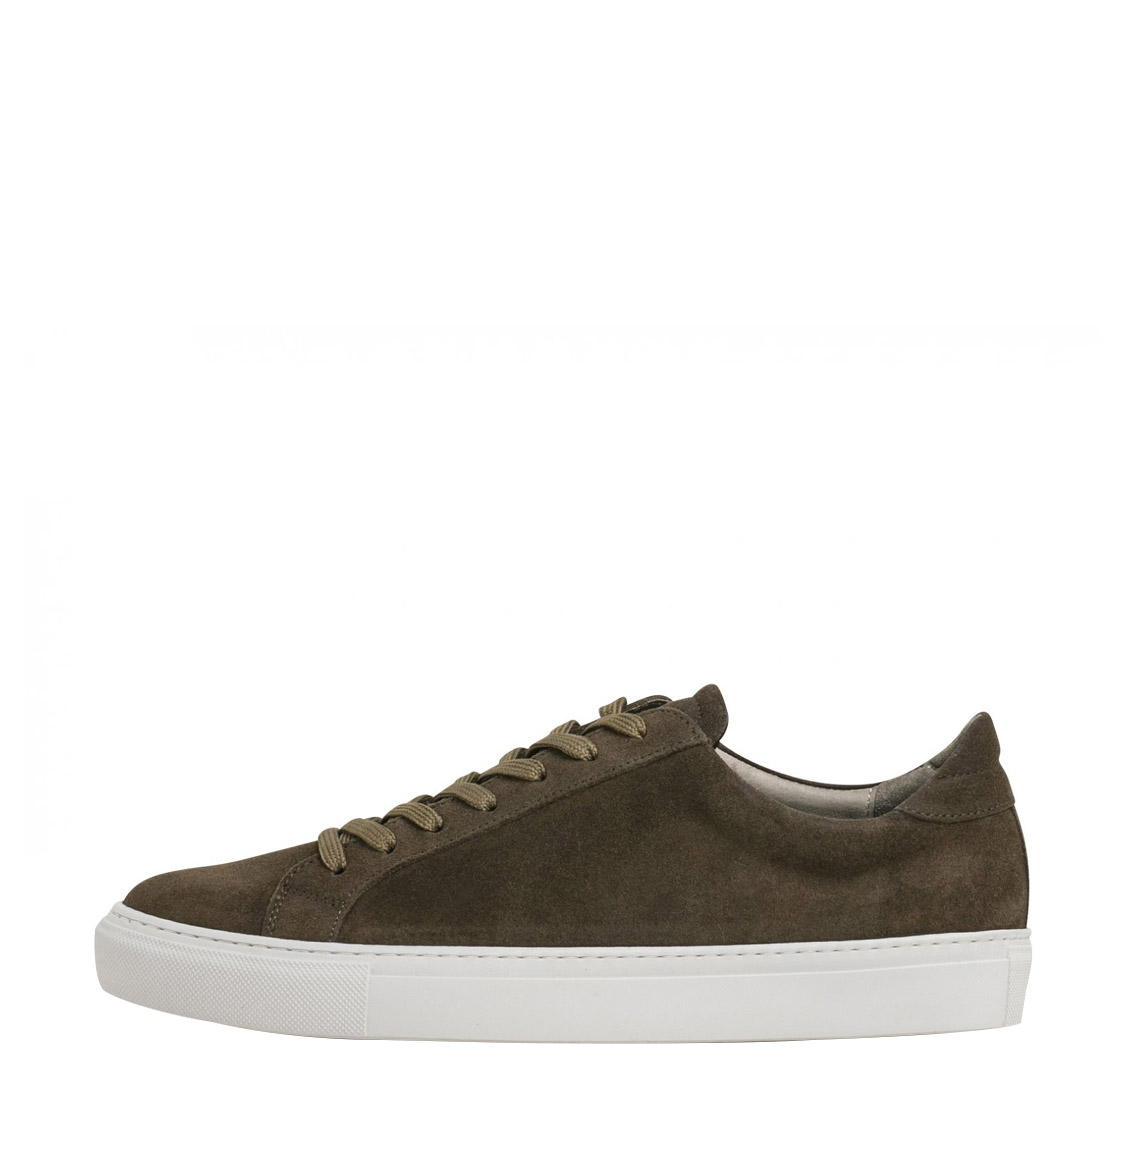 Garment Project Type Waxed Taupe Leather Sneakers